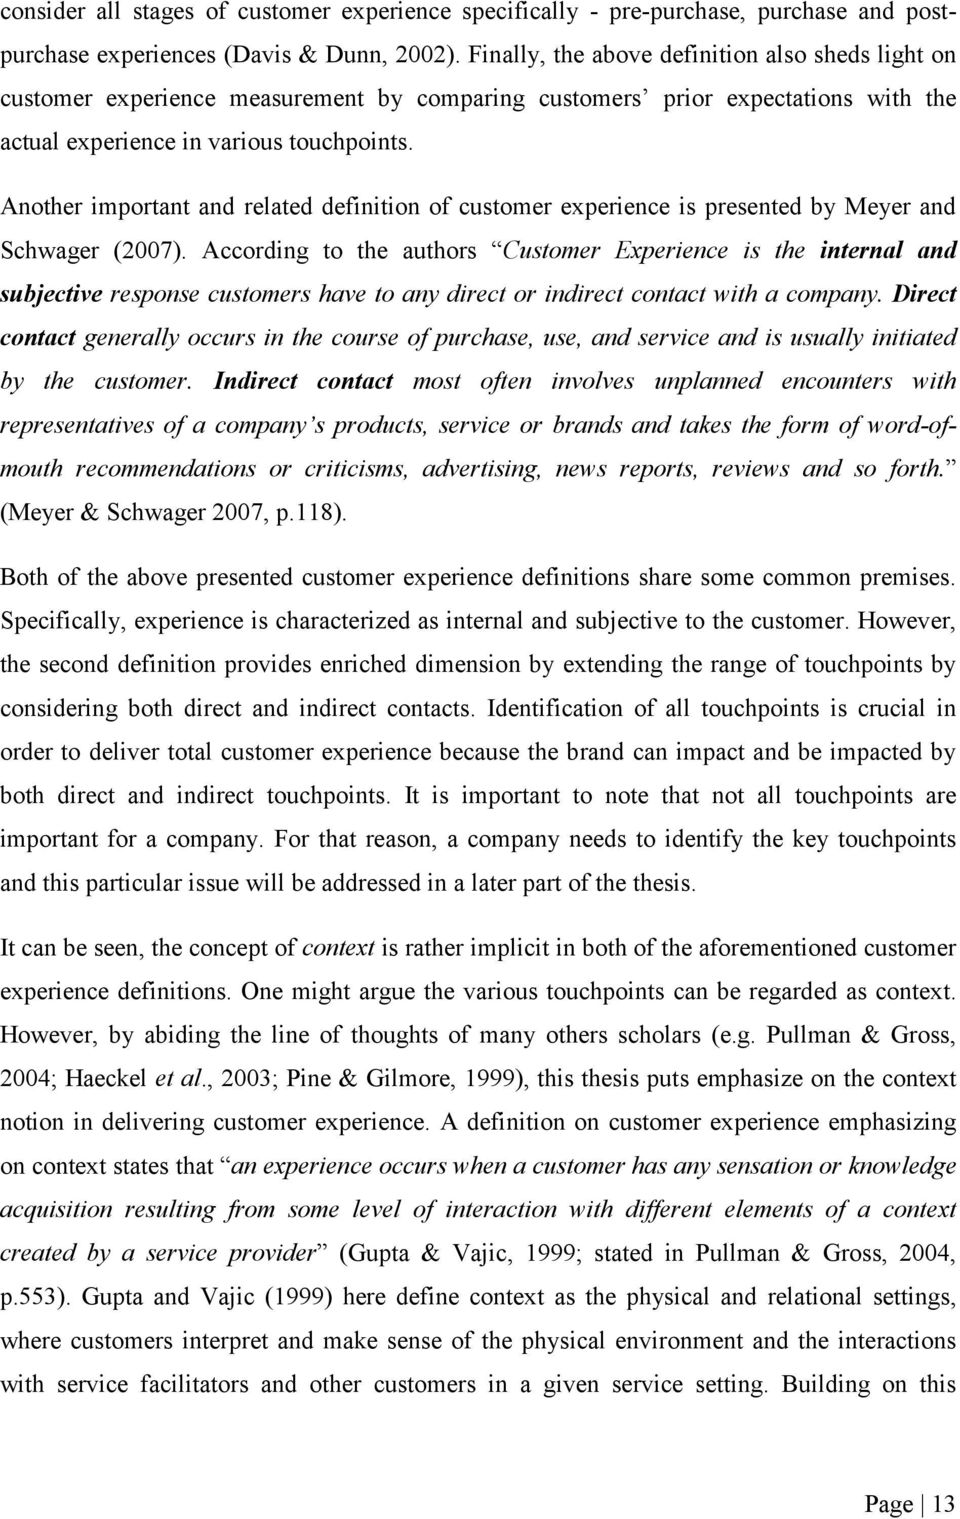 Another important and related definition of customer experience is presented by Meyer and Schwager (2007).